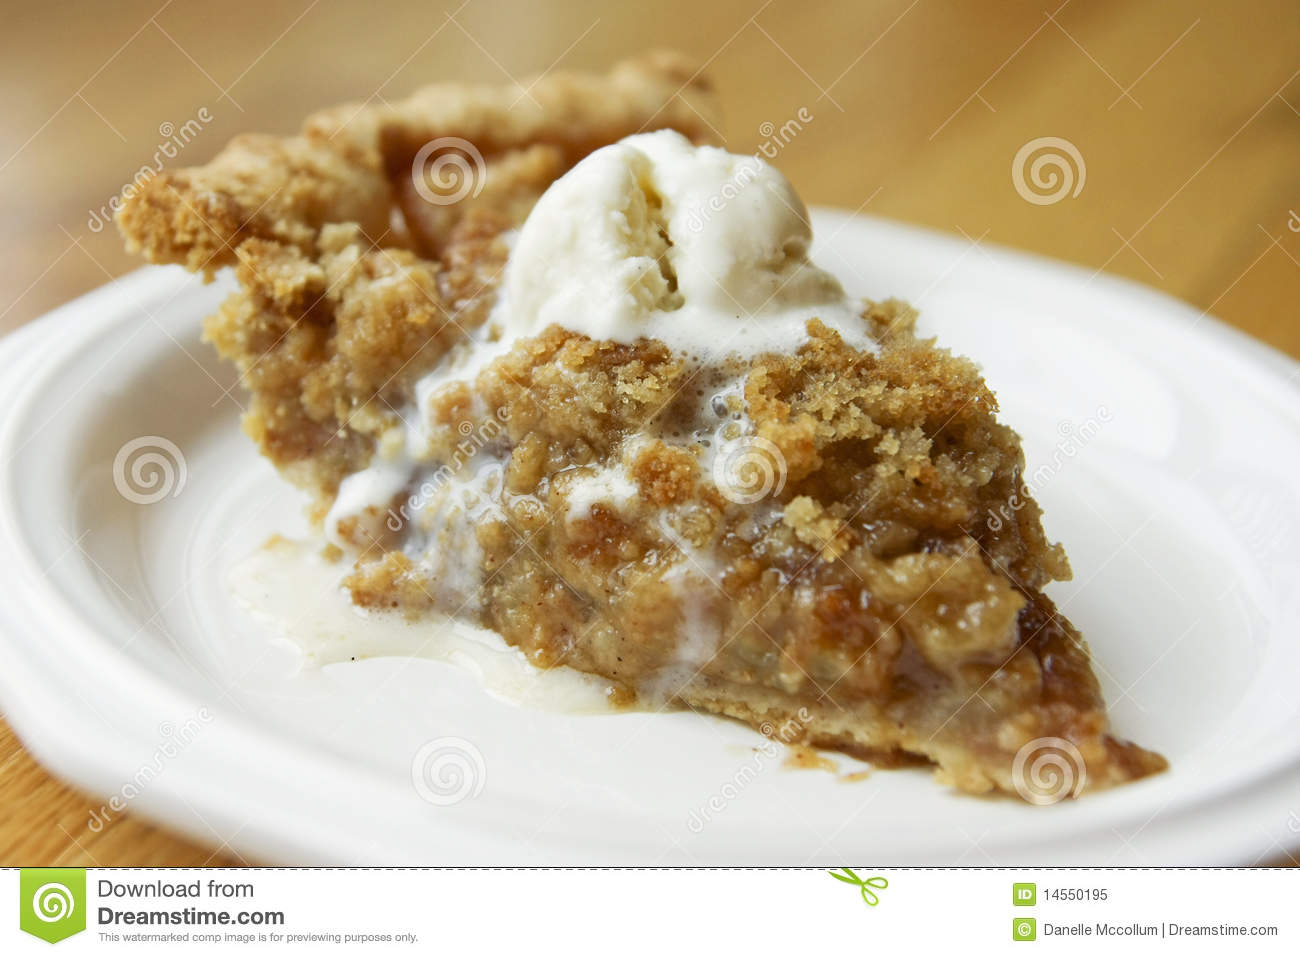 Apple Crumble Pie Royalty Free Stock Photo - Image: 14550195